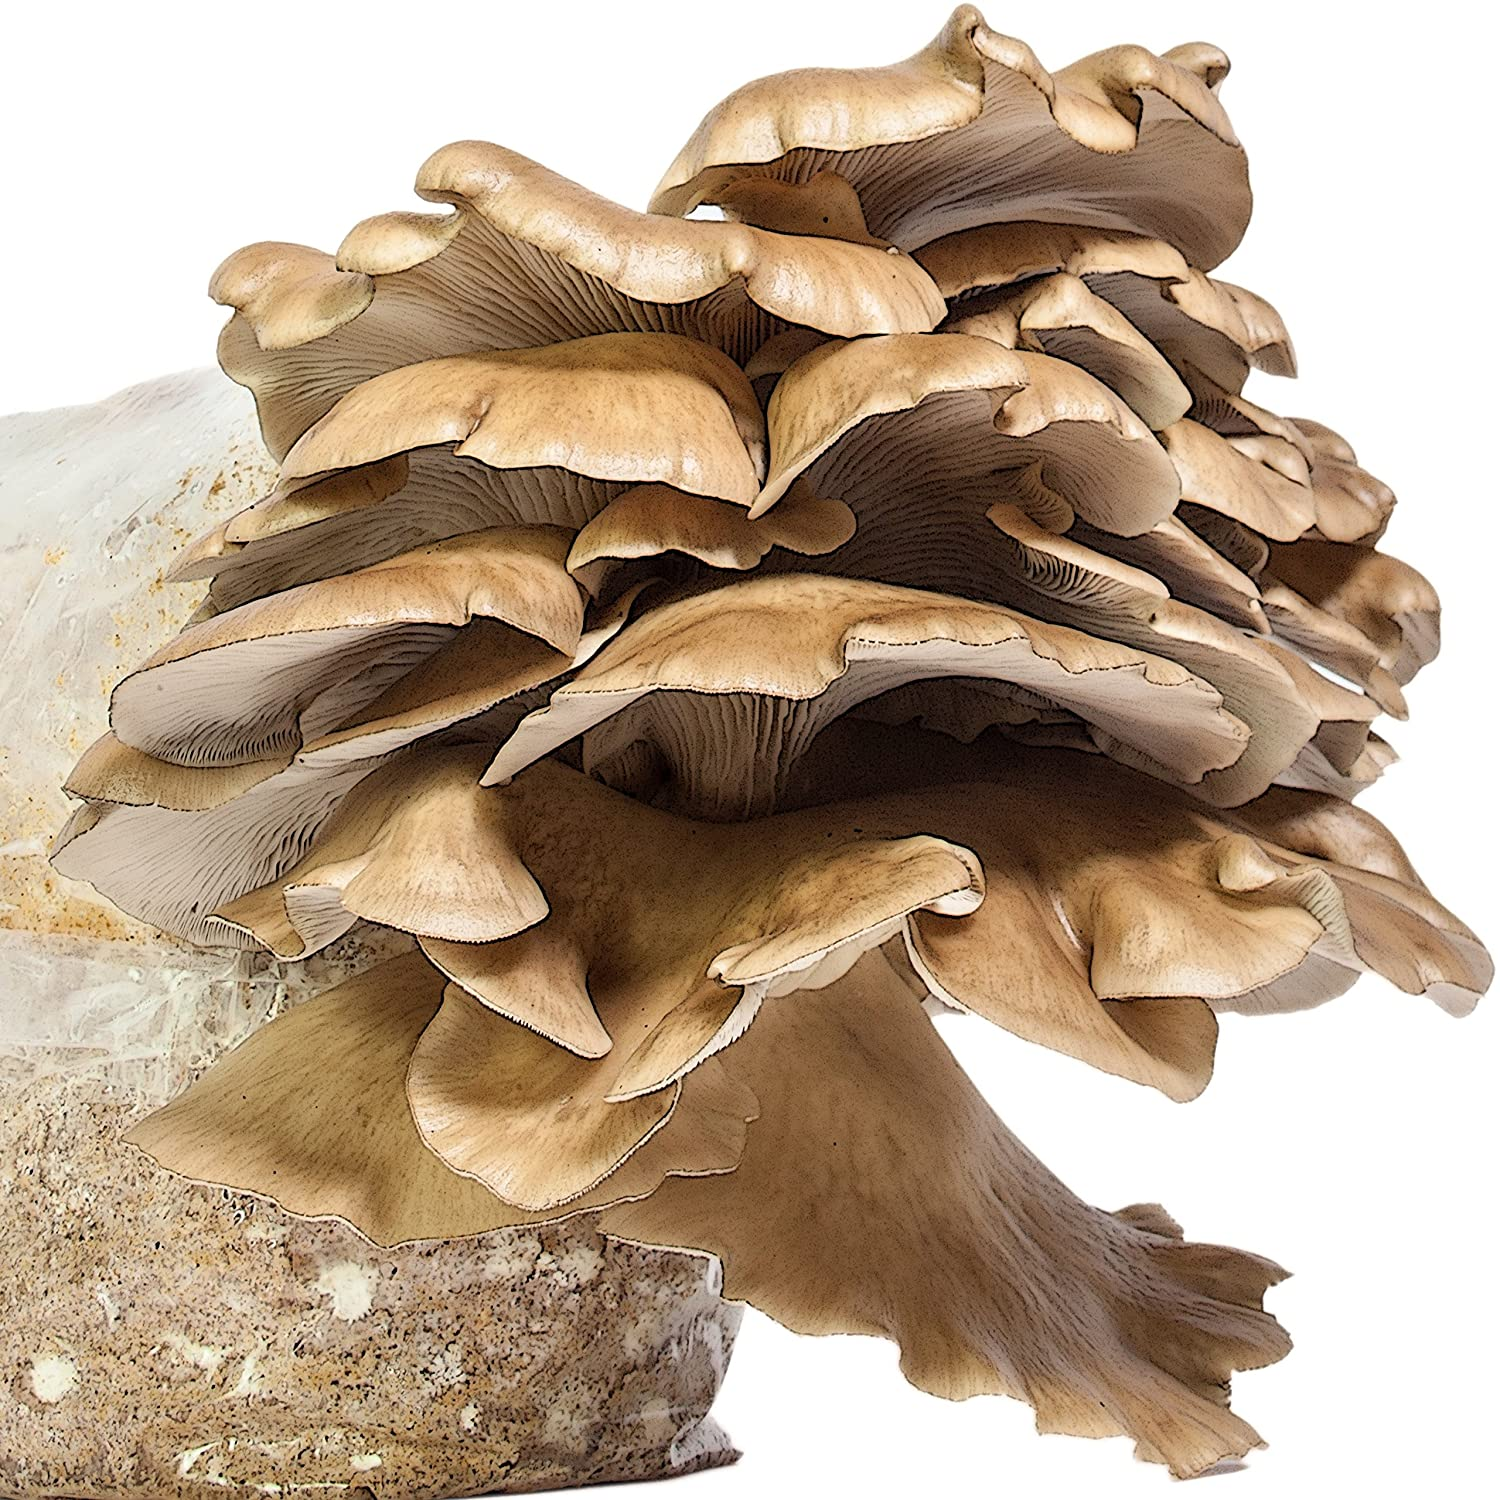 Best Mushroom Growing Kit - Oyster Mushroom Growing Kit - Premium Edition by the Imaginary Farmer